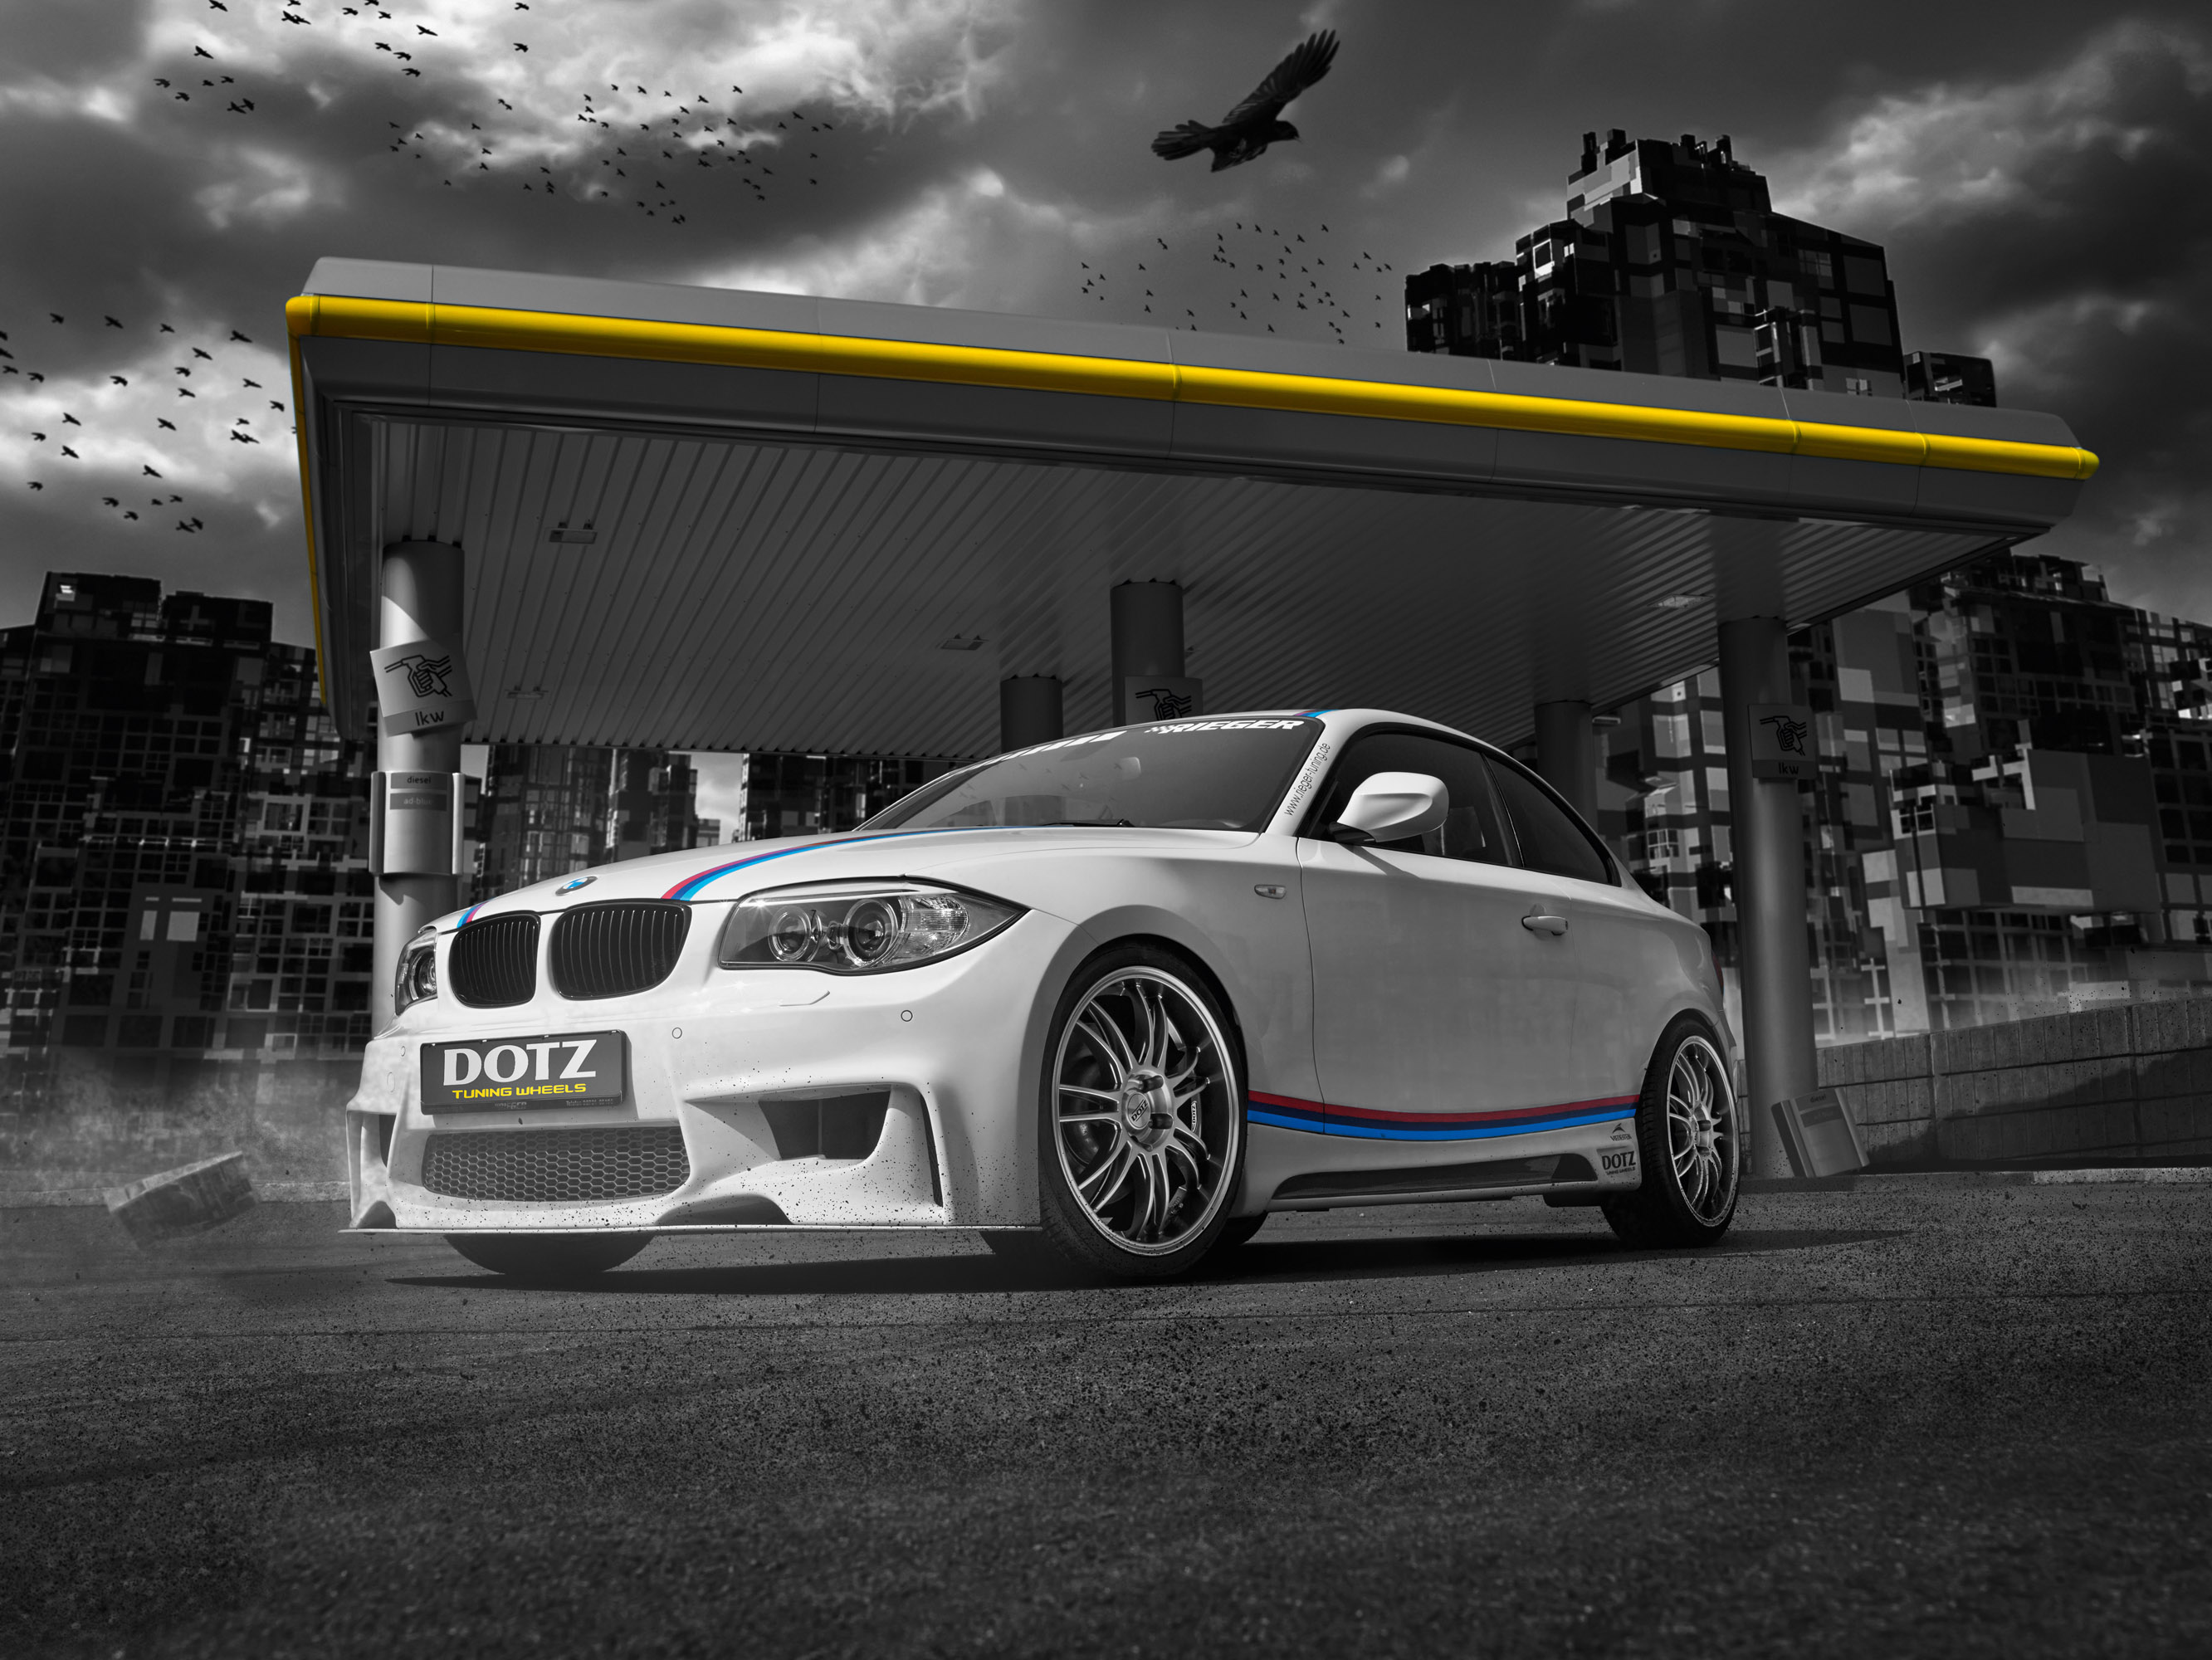 Bmw 135i Coupe Gets Some Extras From Rieger Tuning And